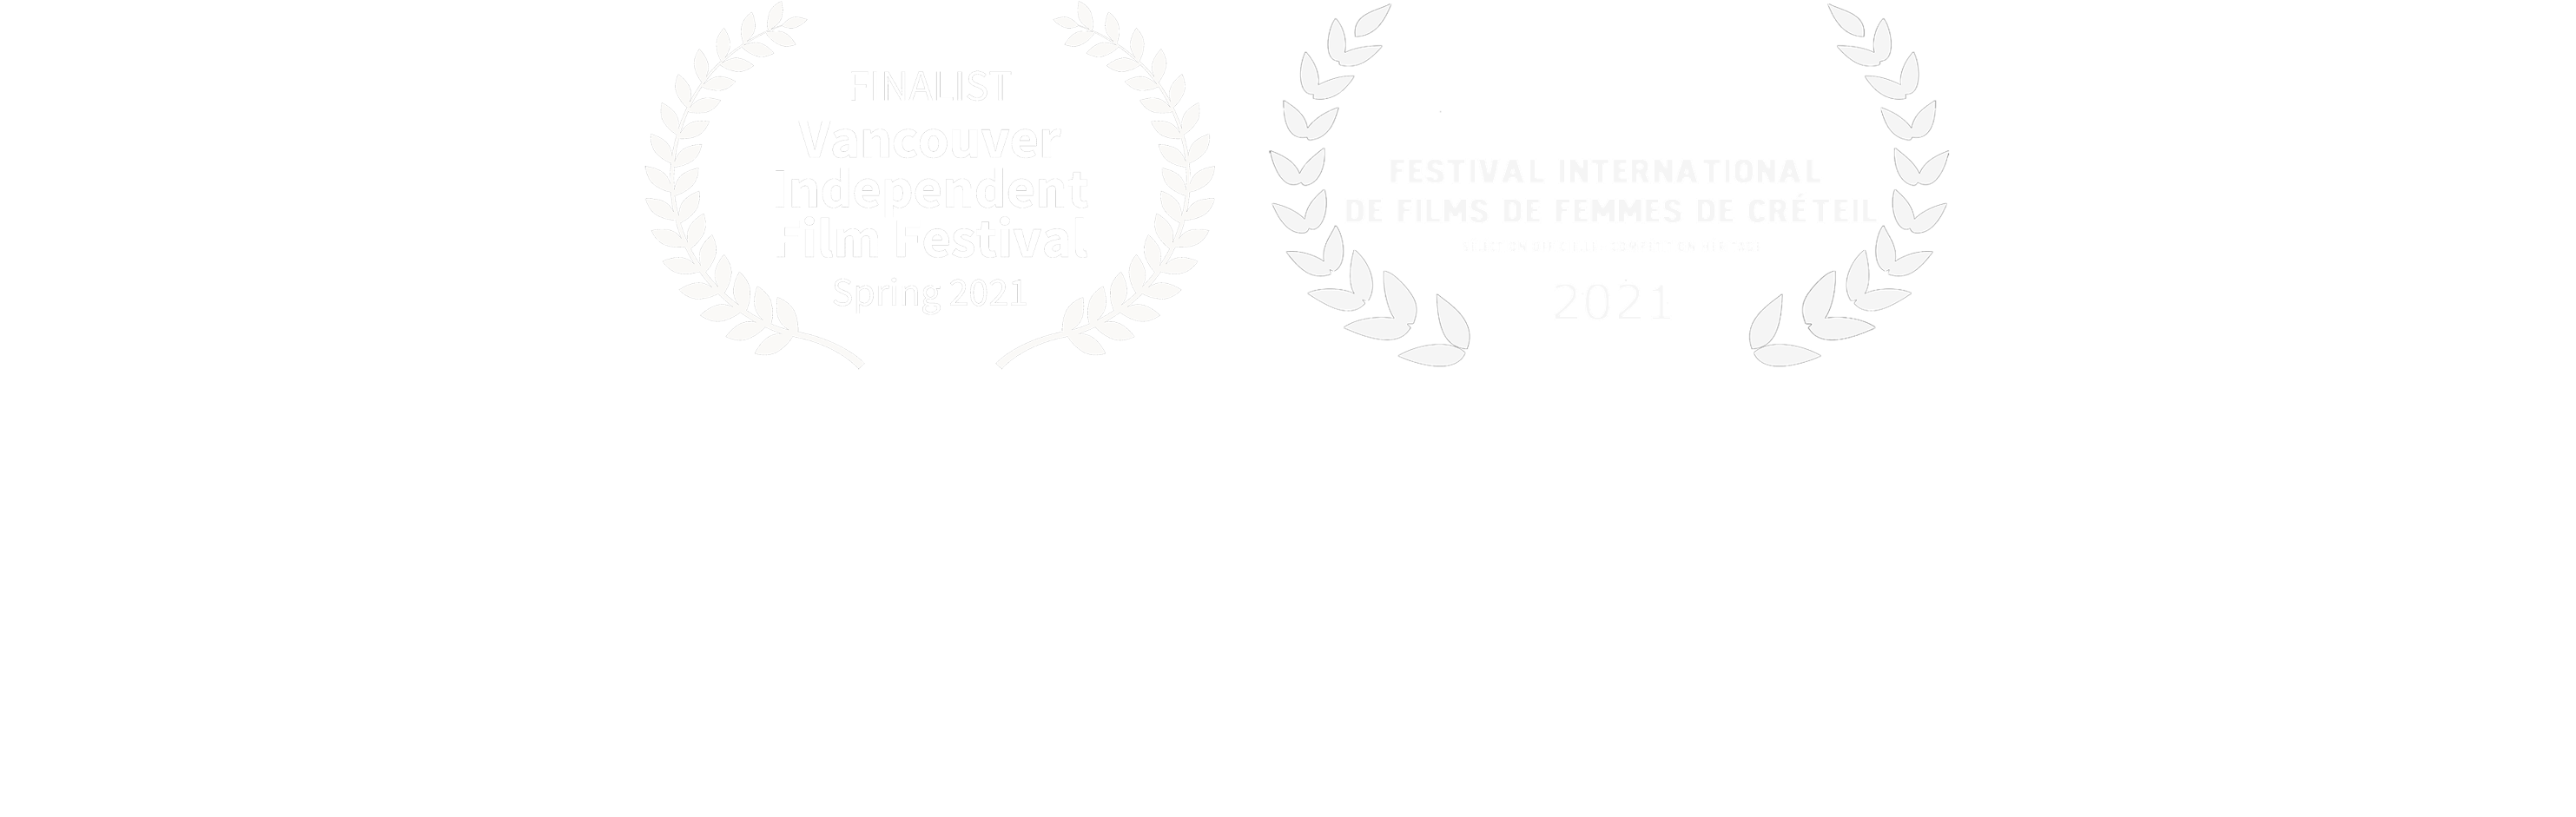 Laurels from festival awards and nominations